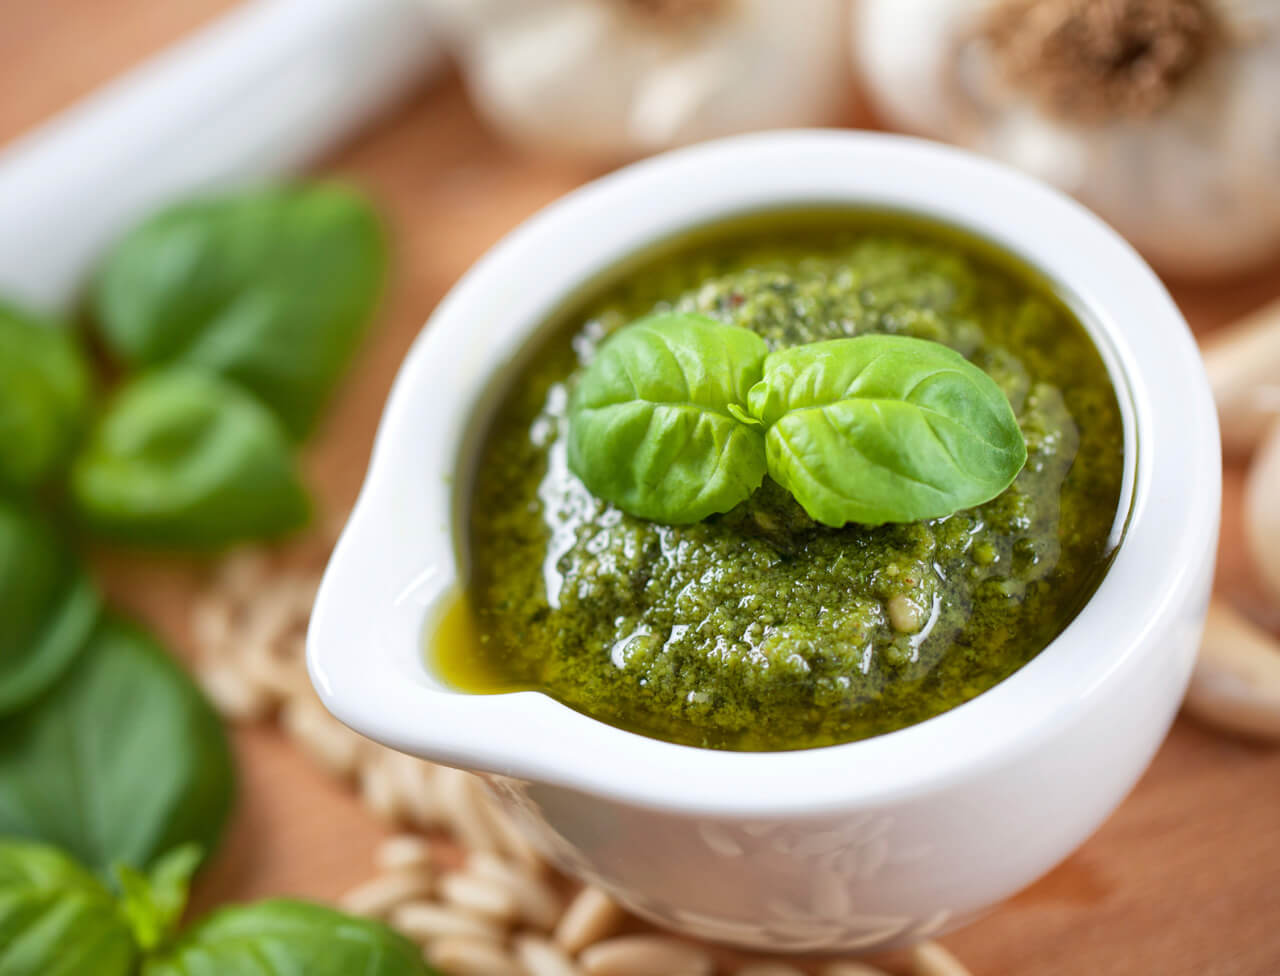 The original pesto recipe, the basil sauce loved by Sinatra